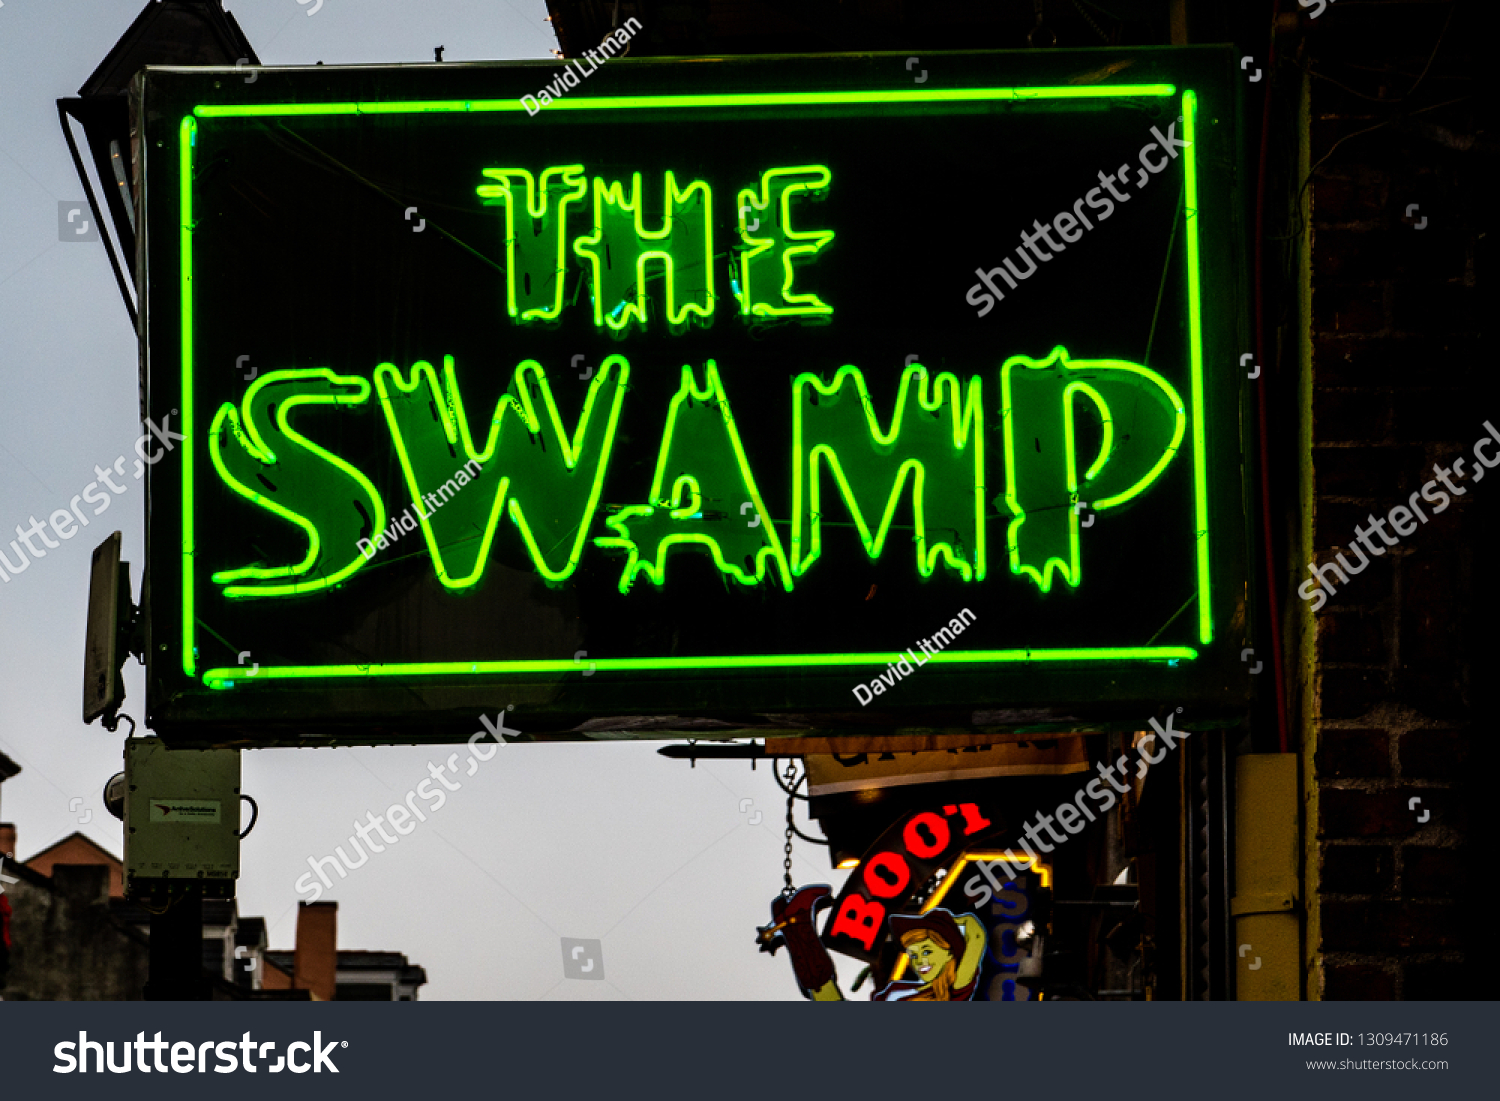 New Orleans, Louisiana - December 30, 2018: The sign marking The Swamp, a buzzing club on Bourbon Street in the French Quarter of New Orleans, serves food and drinks with live music and sports bar.